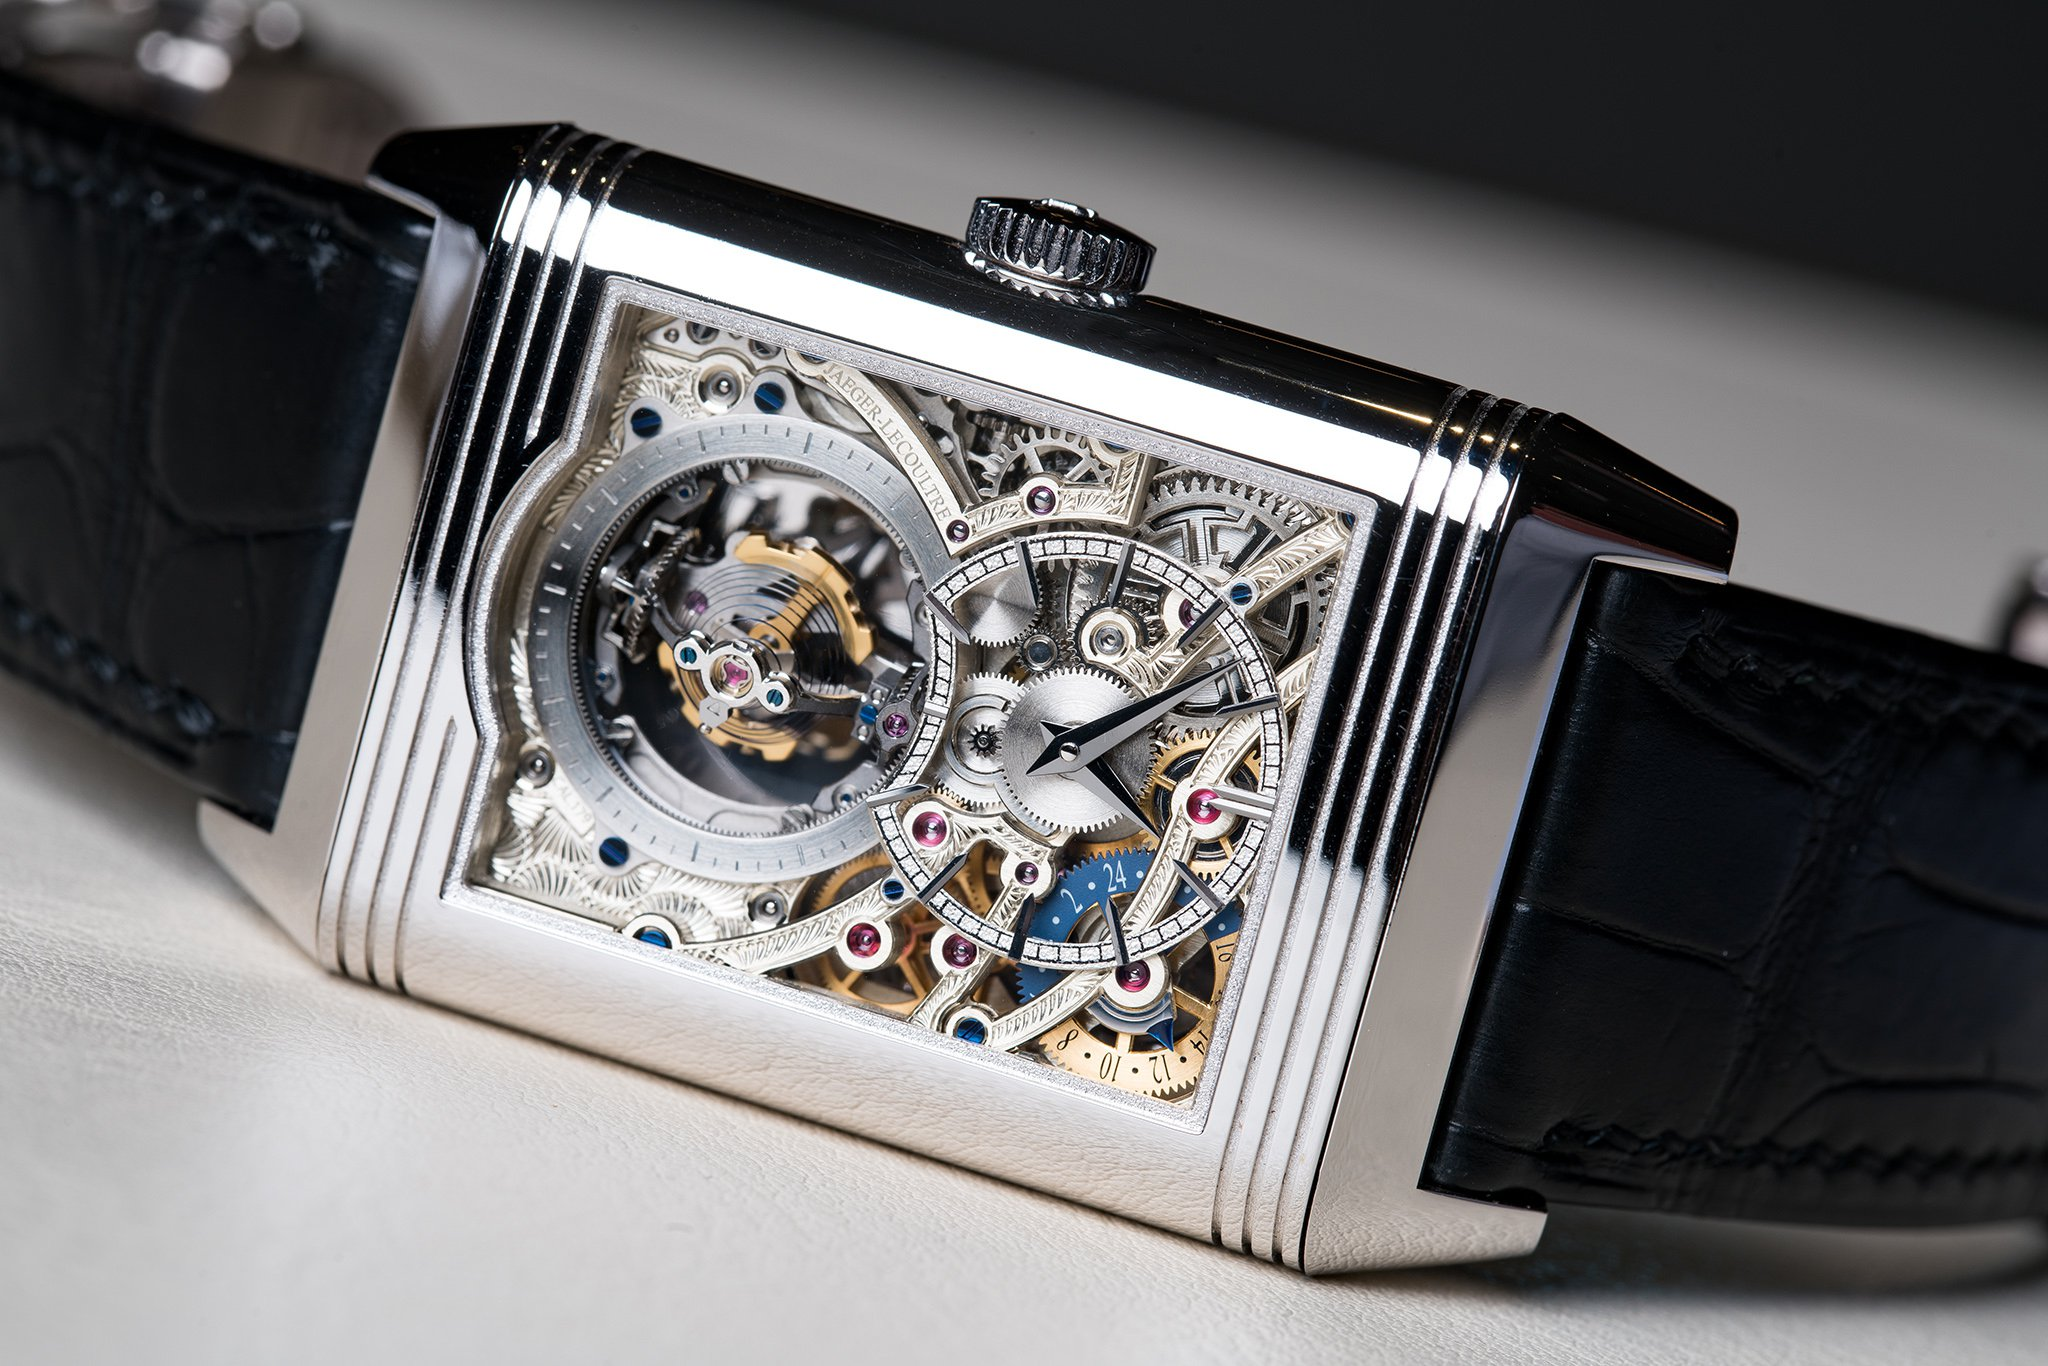 Closer Reviewing the Jaeger-LeCoultre Classic Reverso Tribute Gyrotourbillon Replica Watch